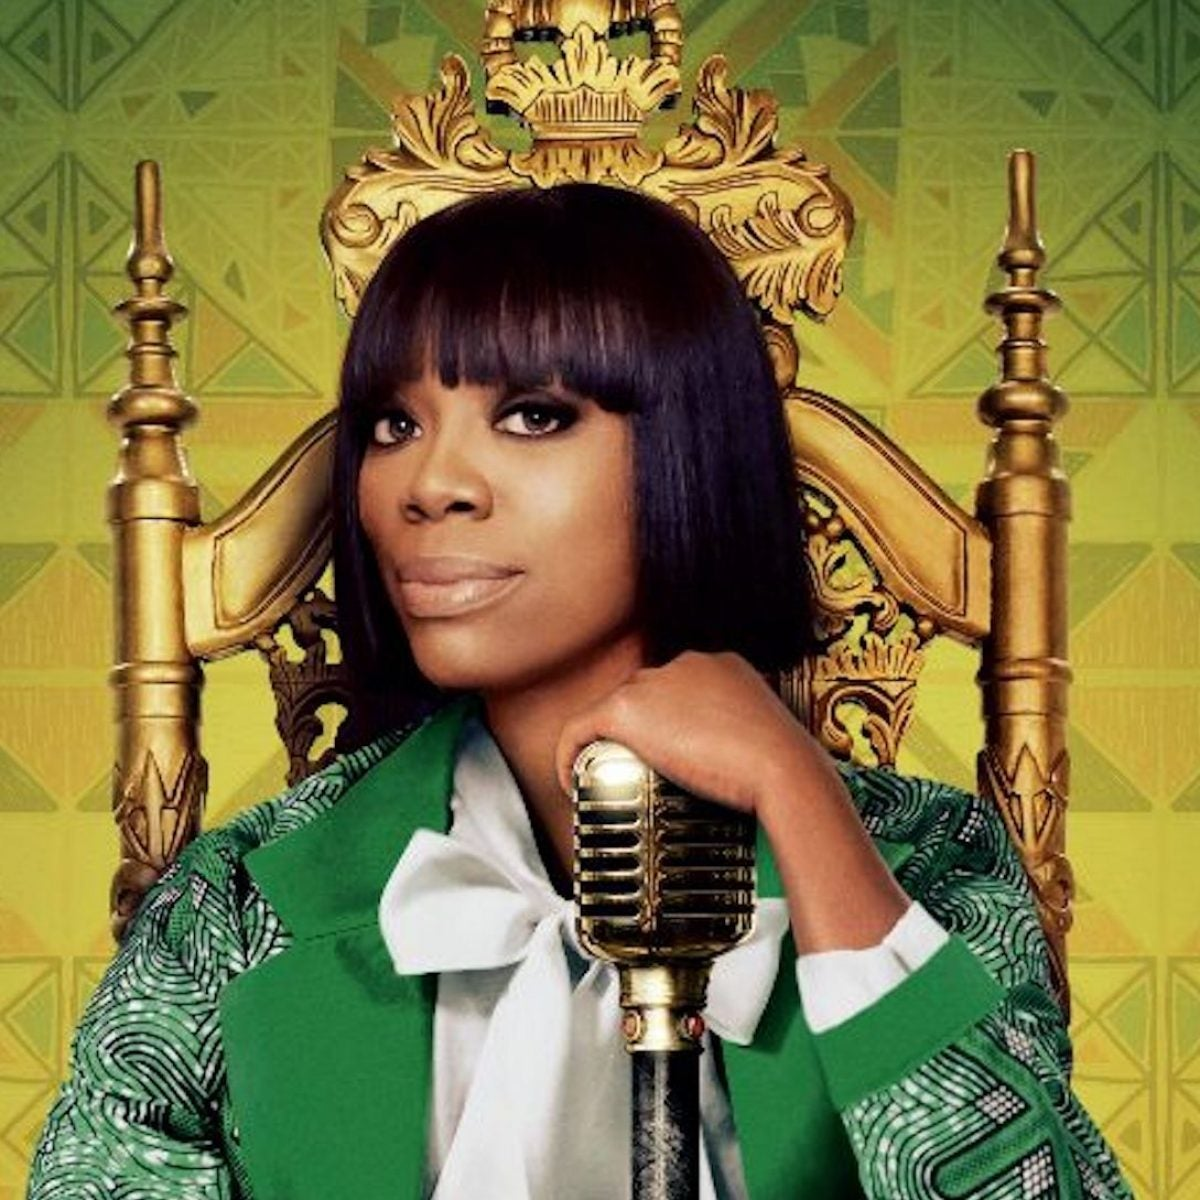 Watch The Trailer For Yvonne Orji's HBO Comedy Special 'Momma, I Made It!'